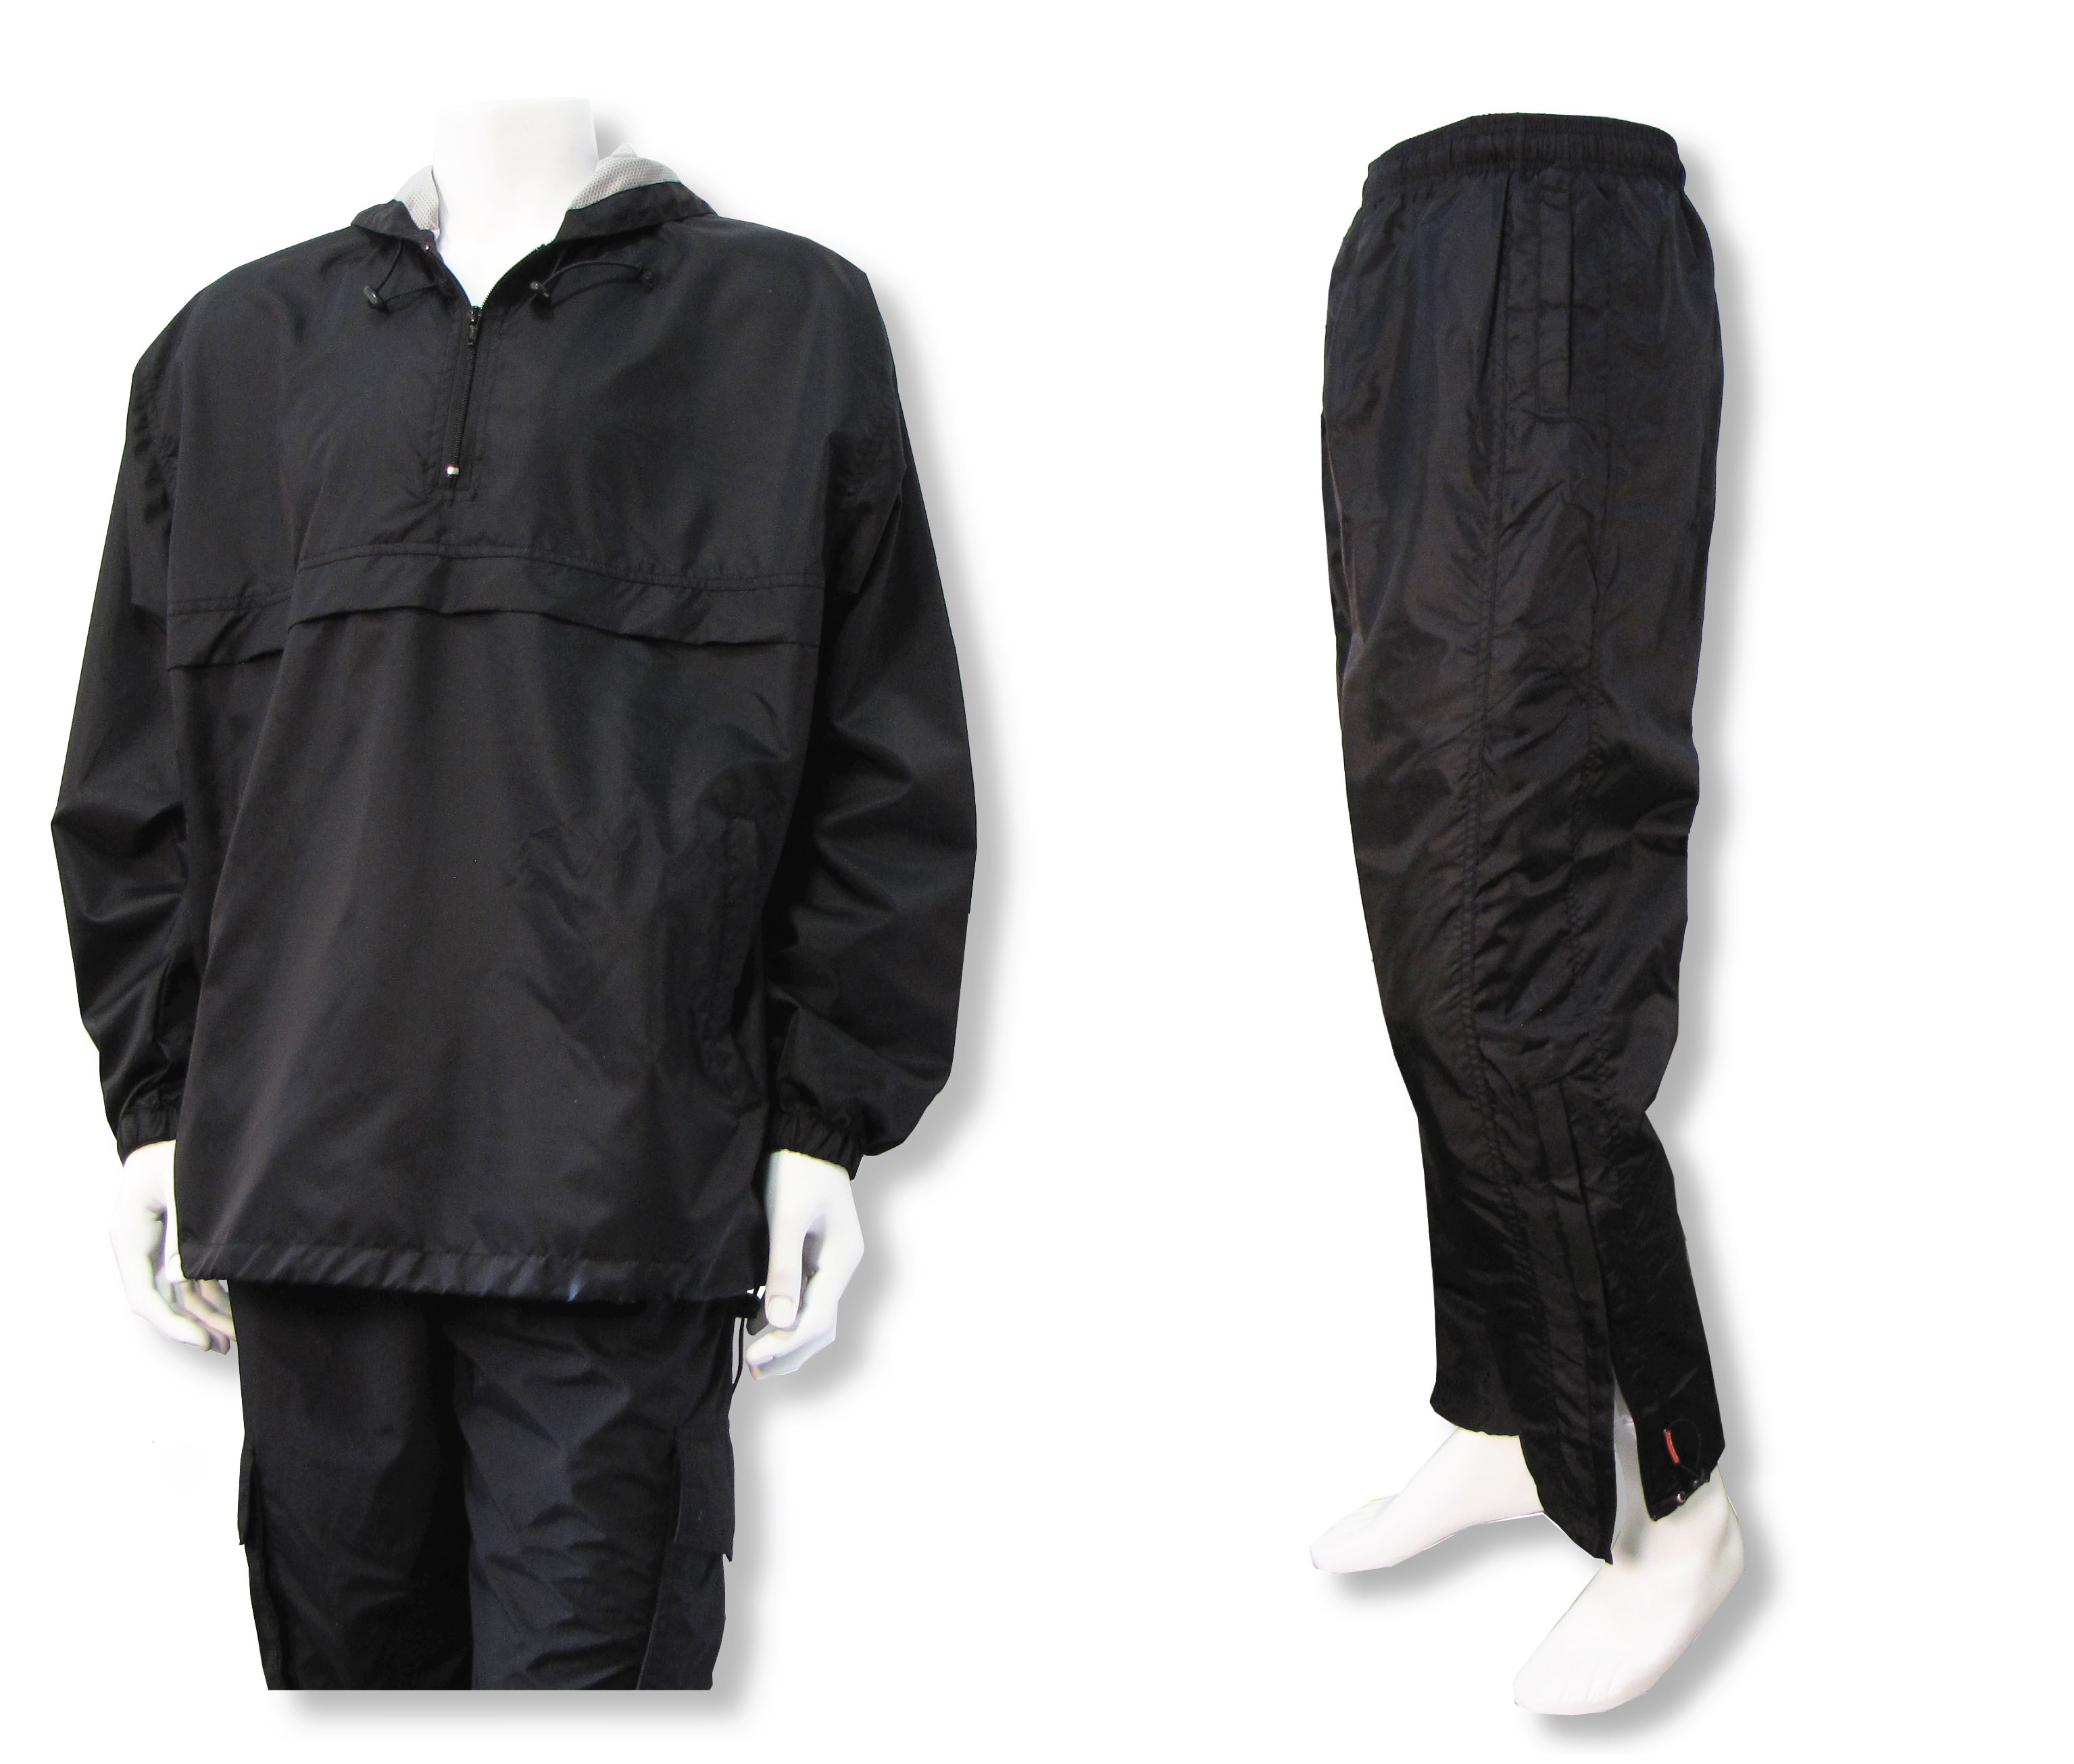 Men's Windbreaker Jacket-Pants Set by Code Four Athletics